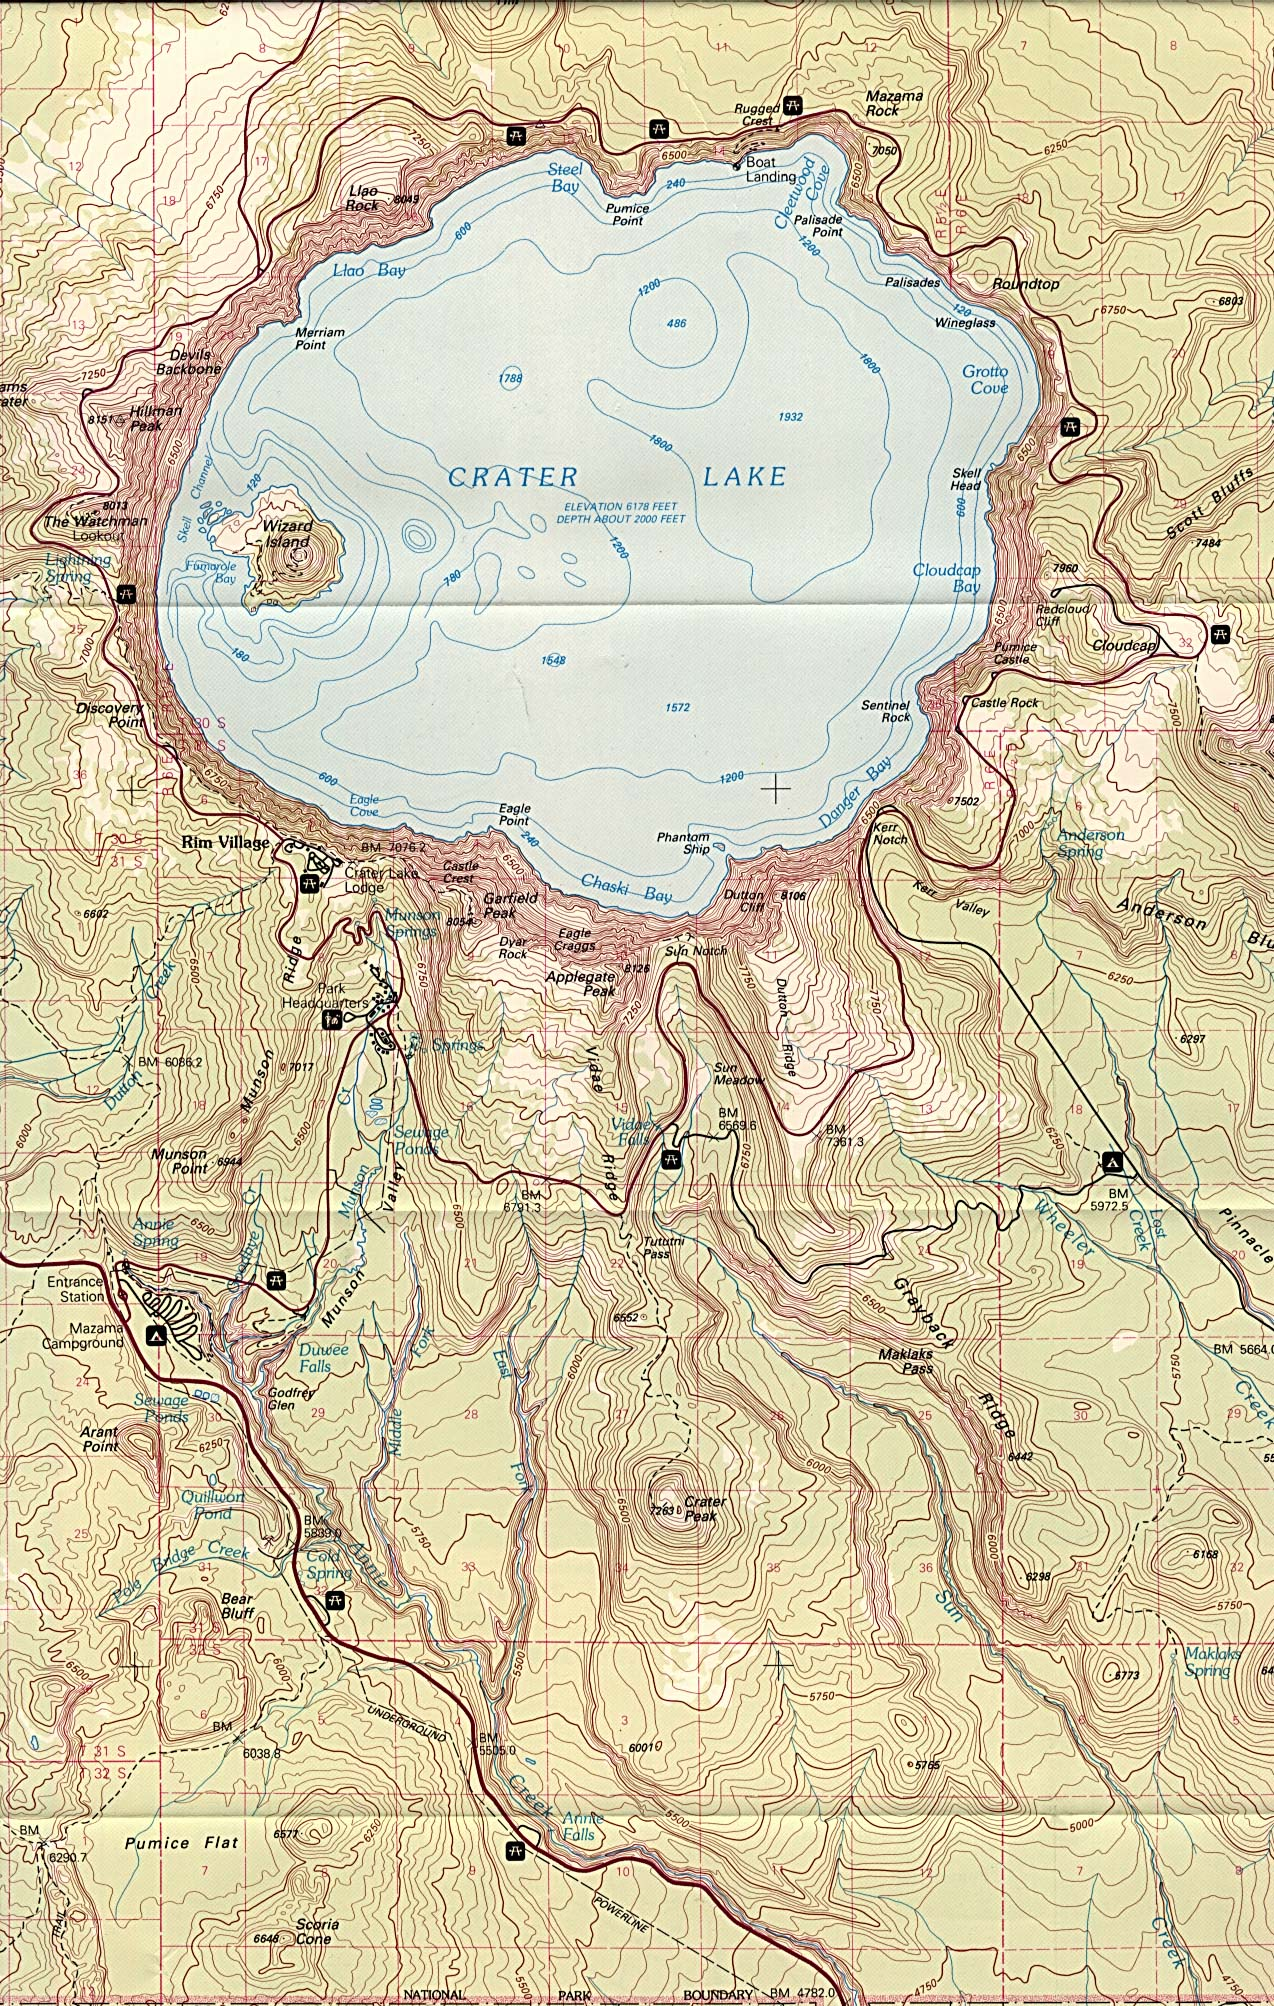 Maps of United States National Parks, Monuments and Historic Sites Crater Lake National Park [Oregon] [Topographic Map] scale 1:62,500 U.S.G.S. 1988 (944K)